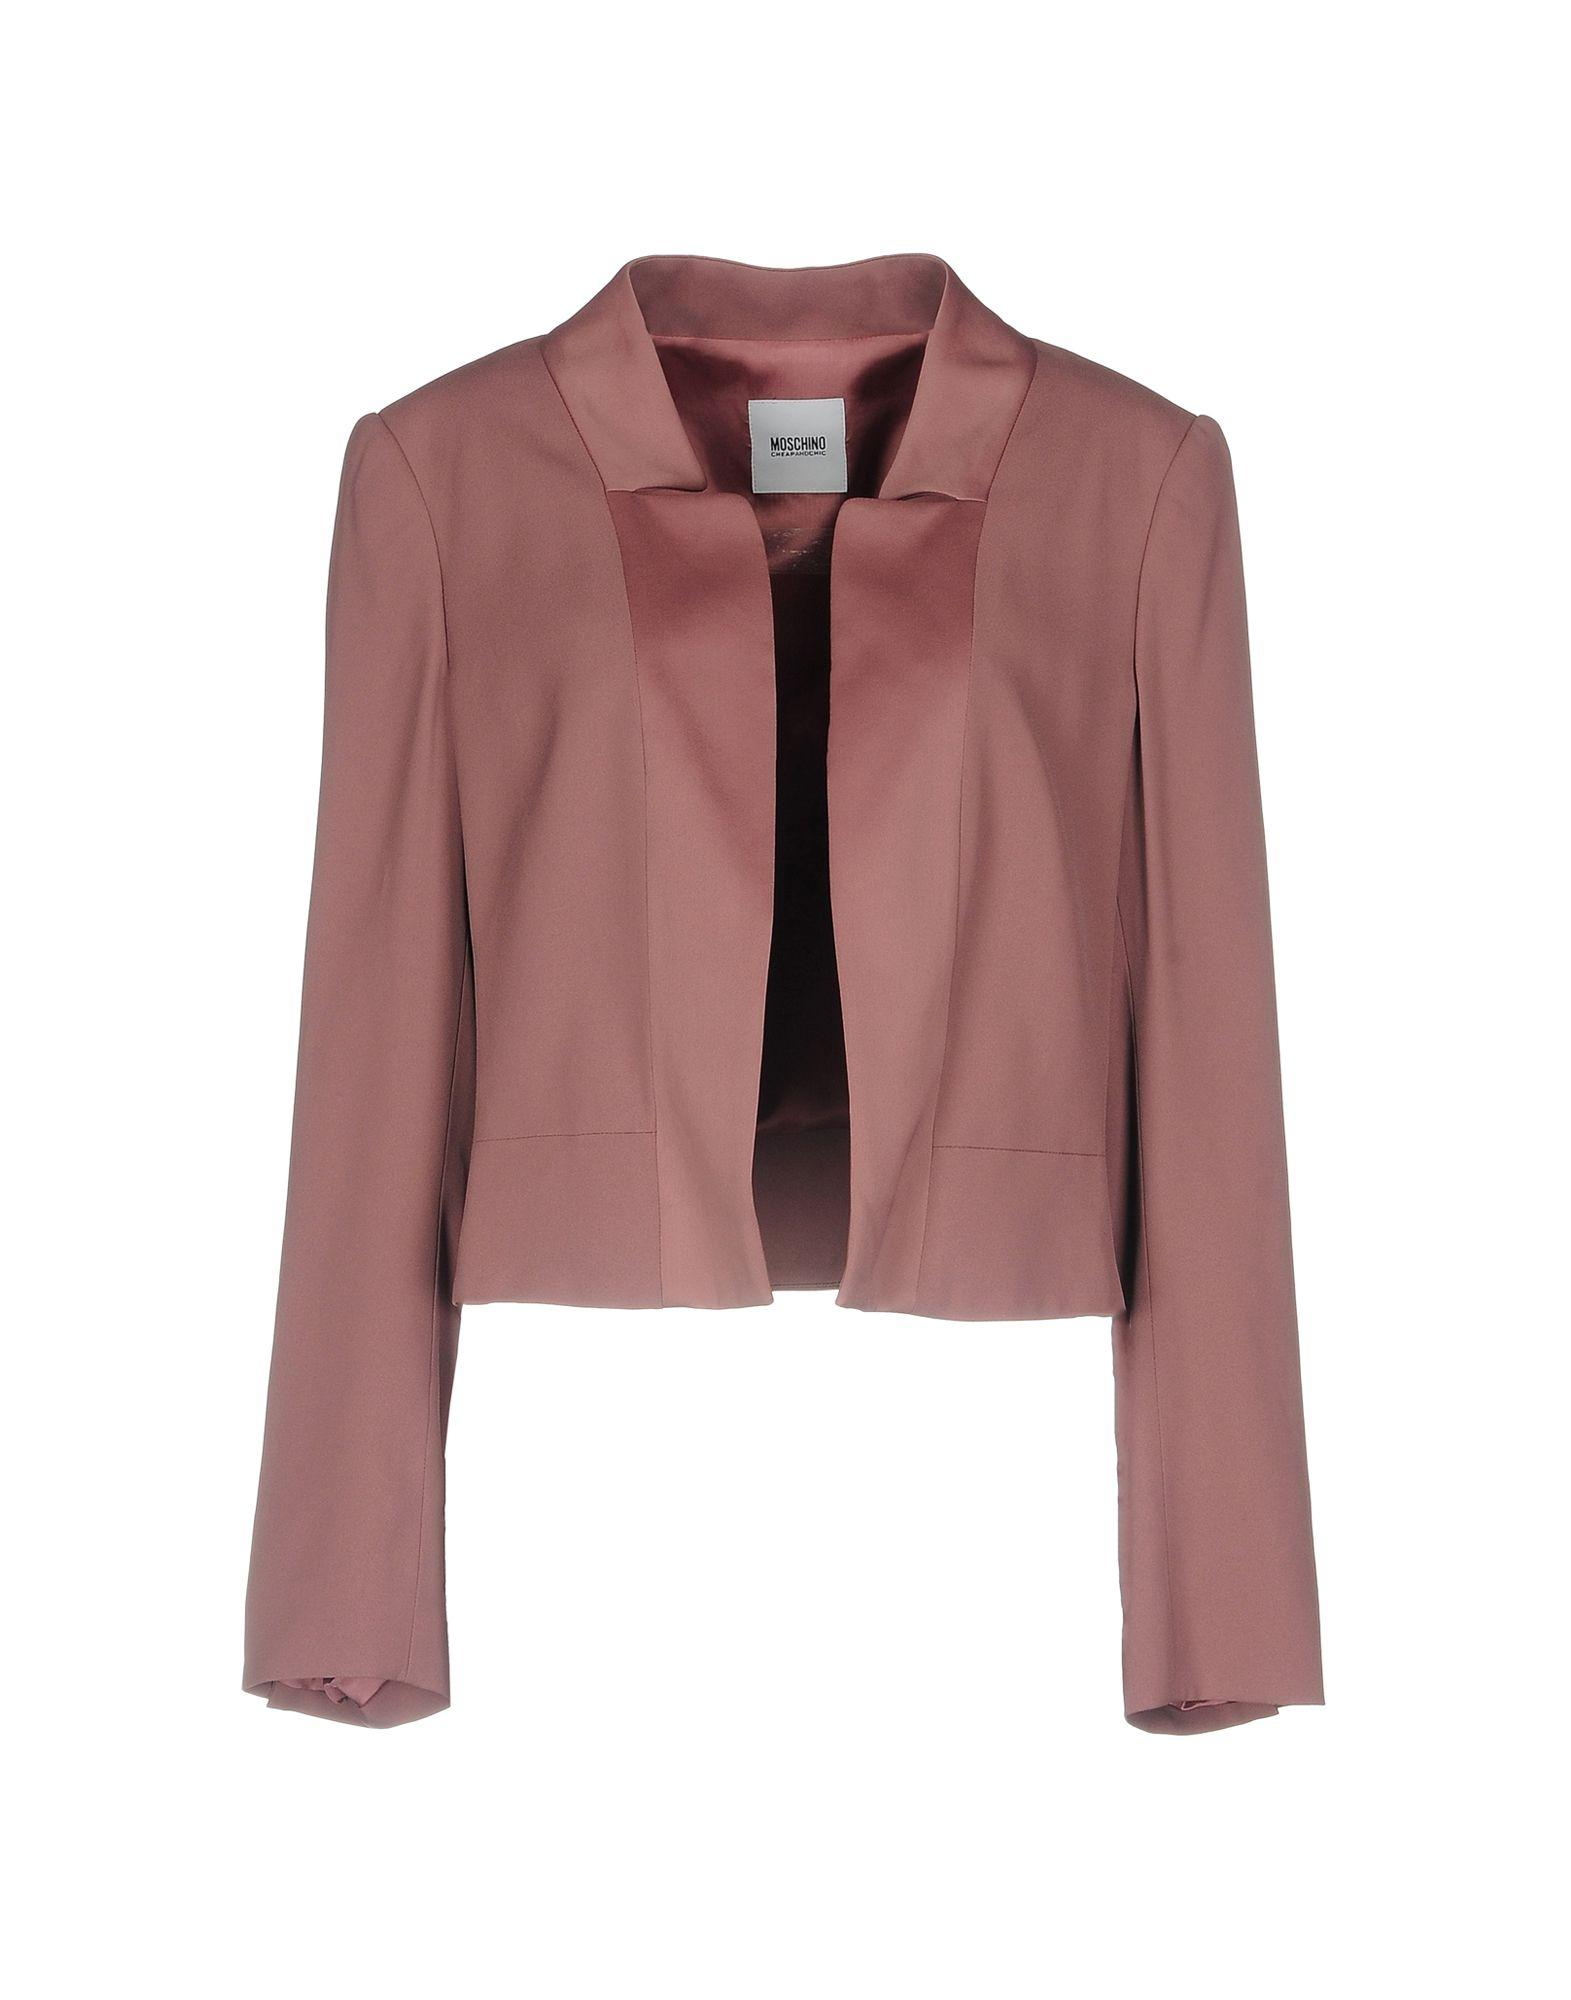 Moschino Cheap And Chic Blazer In Pastel Pink